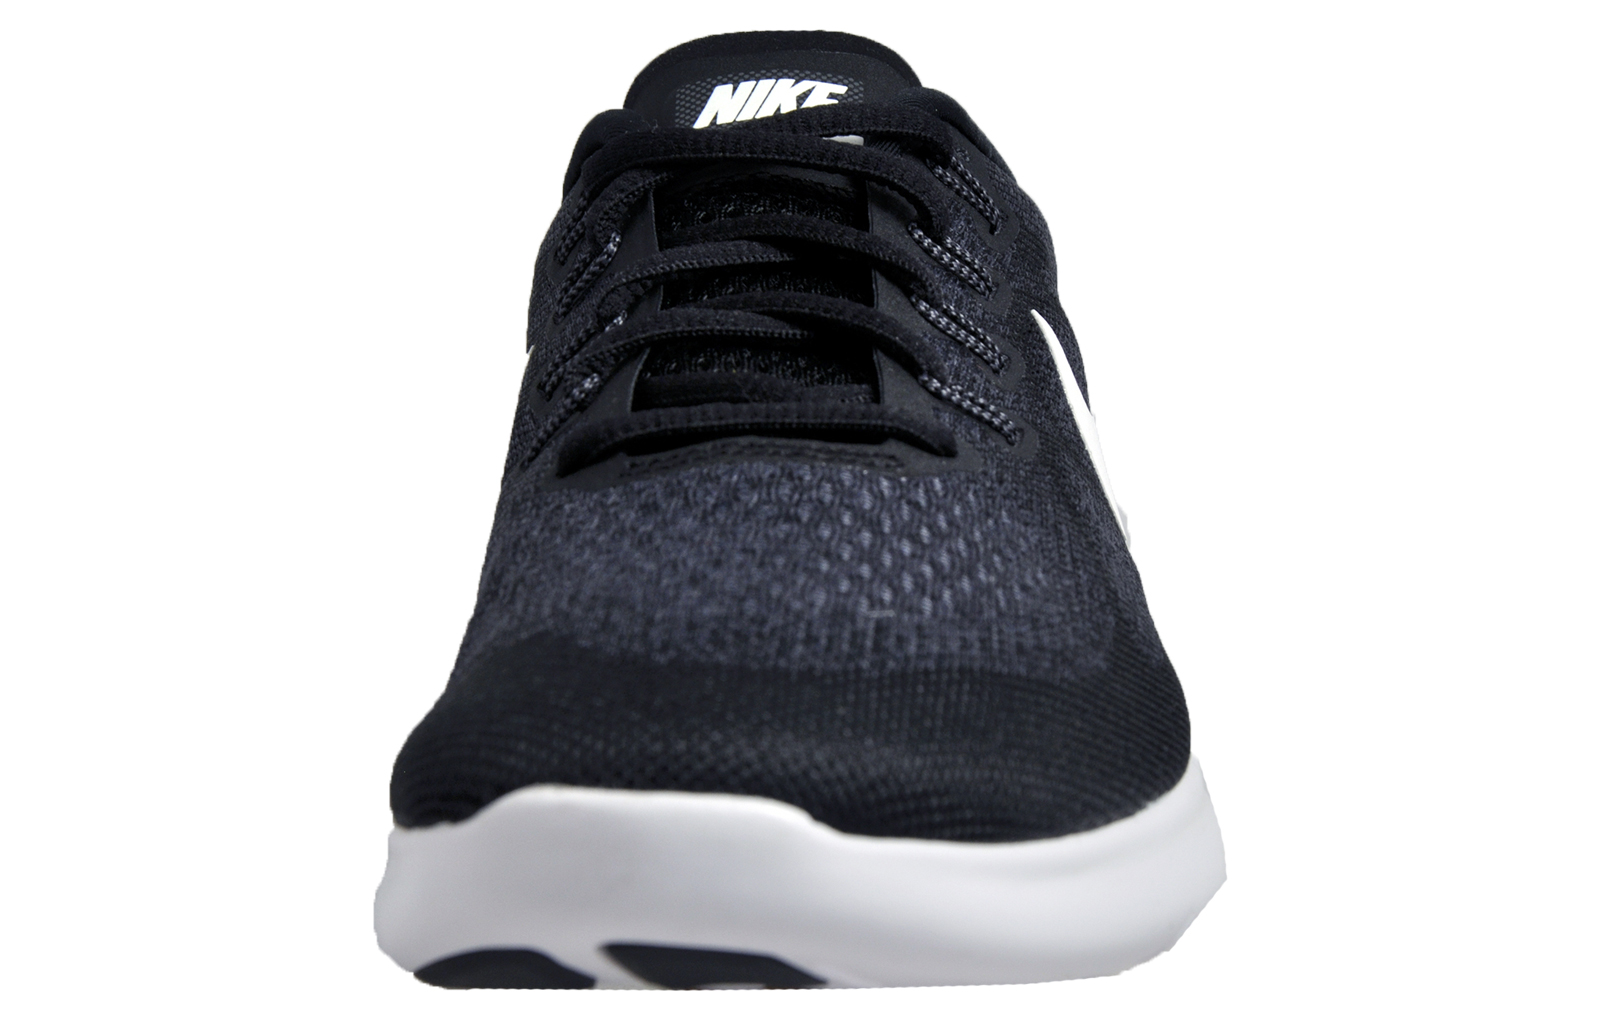 online store 6144a 38921 Nike Free RN 2017 Mens Running Shoes Fitness Gym Workout Trainers Black.  Manufacturers code  880839001